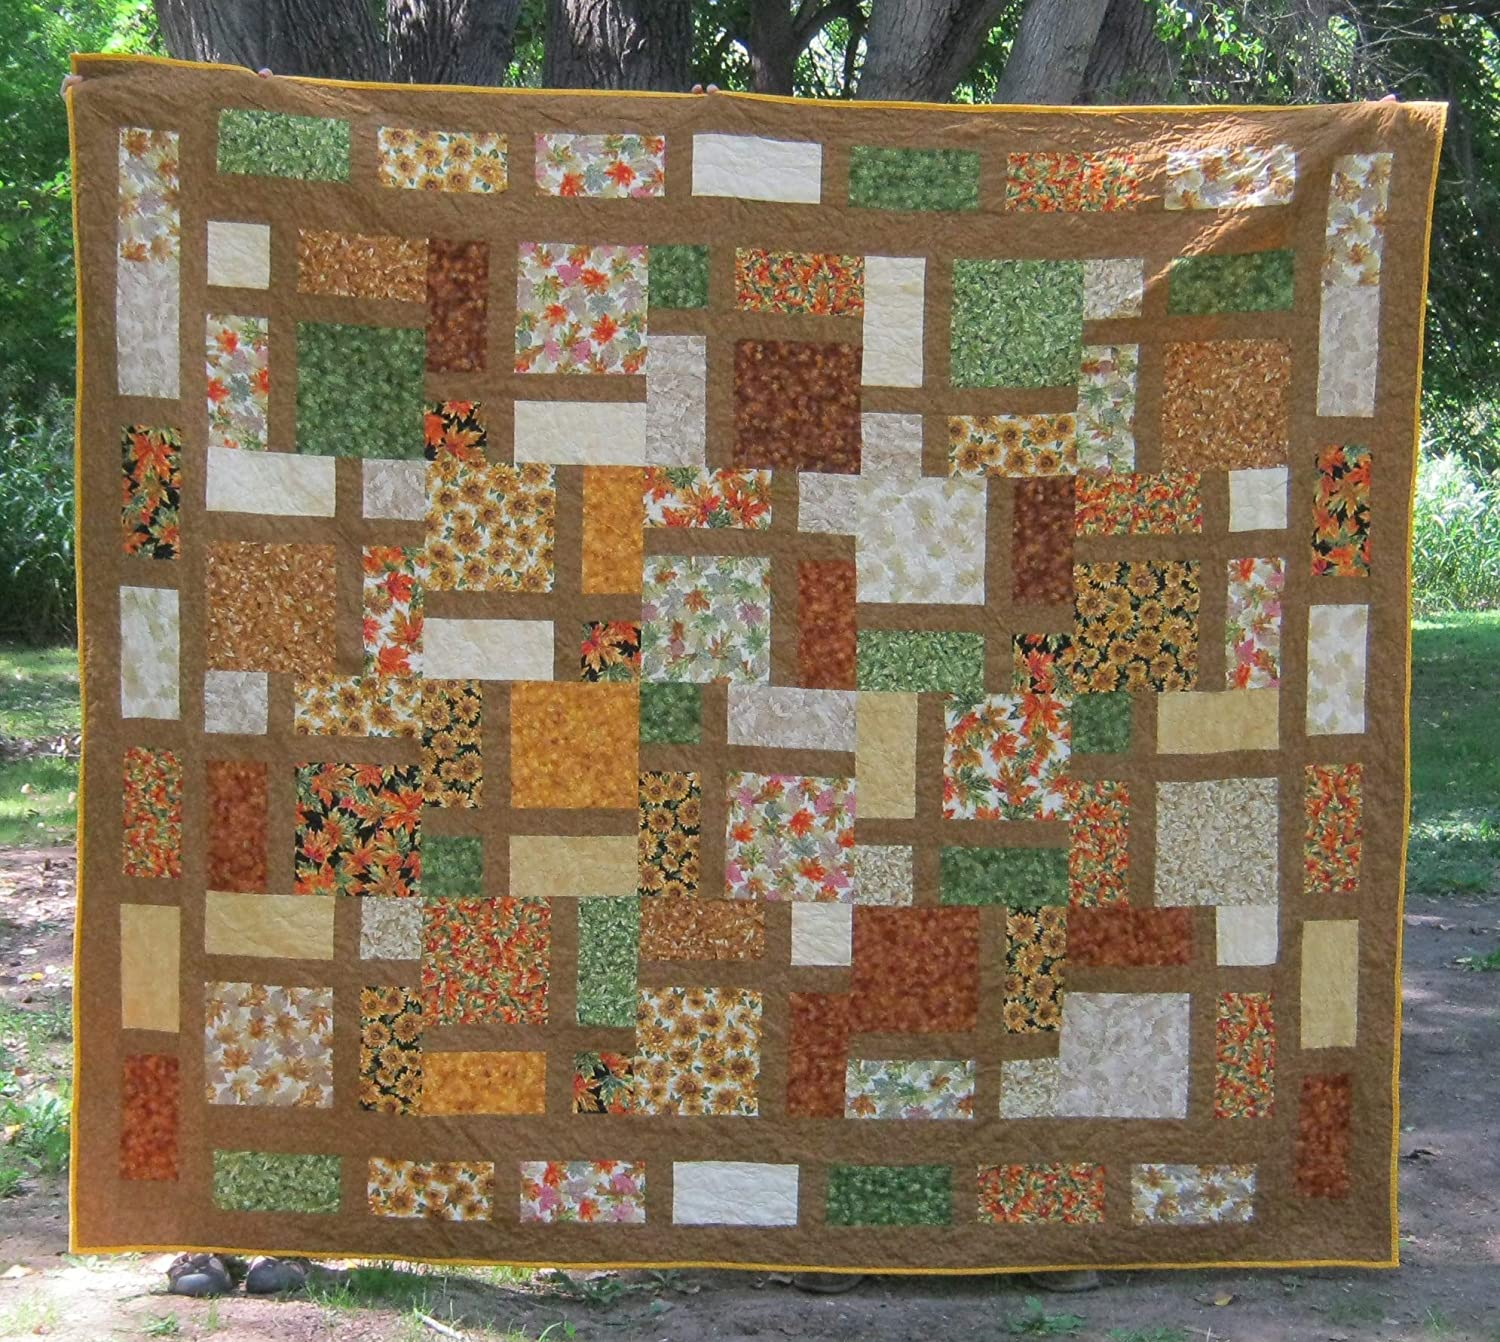 Image of Handmade Autumn Quilt Double/Queen, Extra Large Lap Quilt, Mosaic Fiber Art, Quilted Bed Blanket, Fall Harvest Home and Kitchen